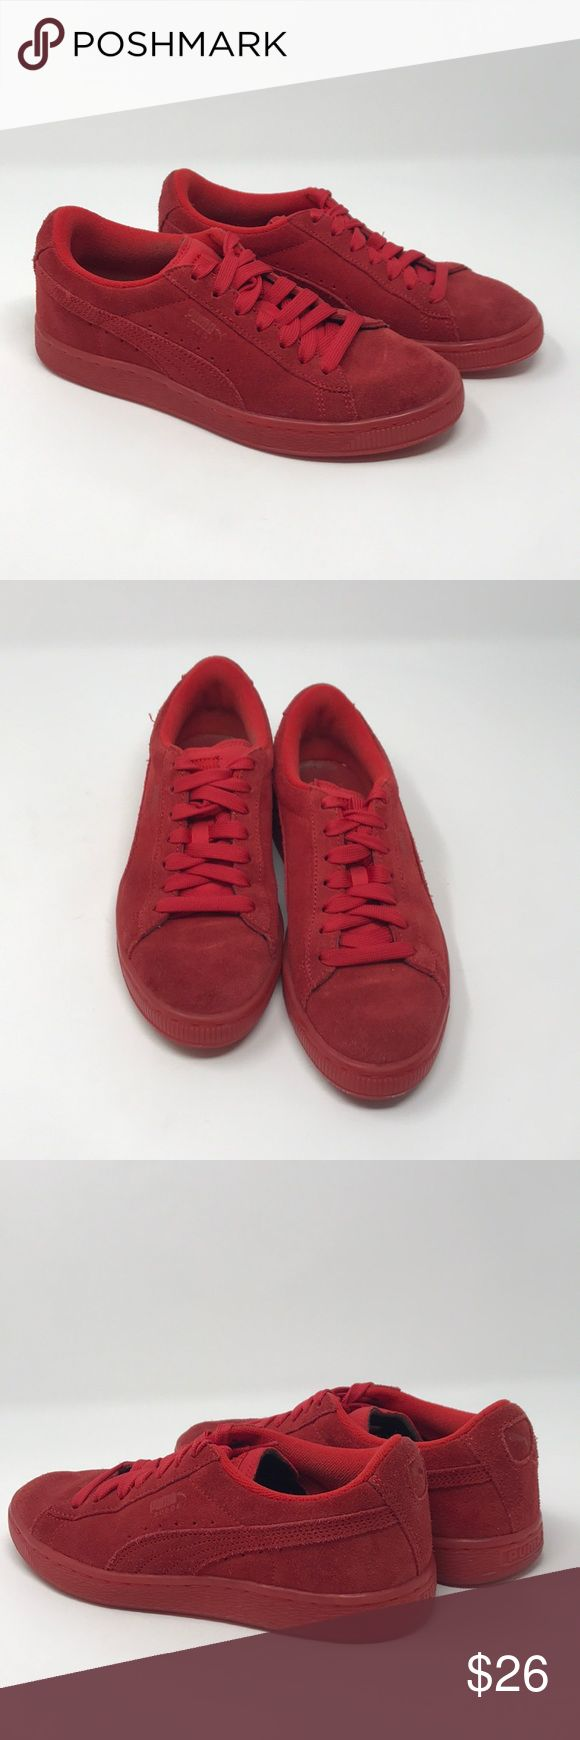 Puma sneakers  red suede classics Puma sneakers red suede classic, gently worn, size 6.5C men, like 7.5-8 women puma Shoes Sneakers